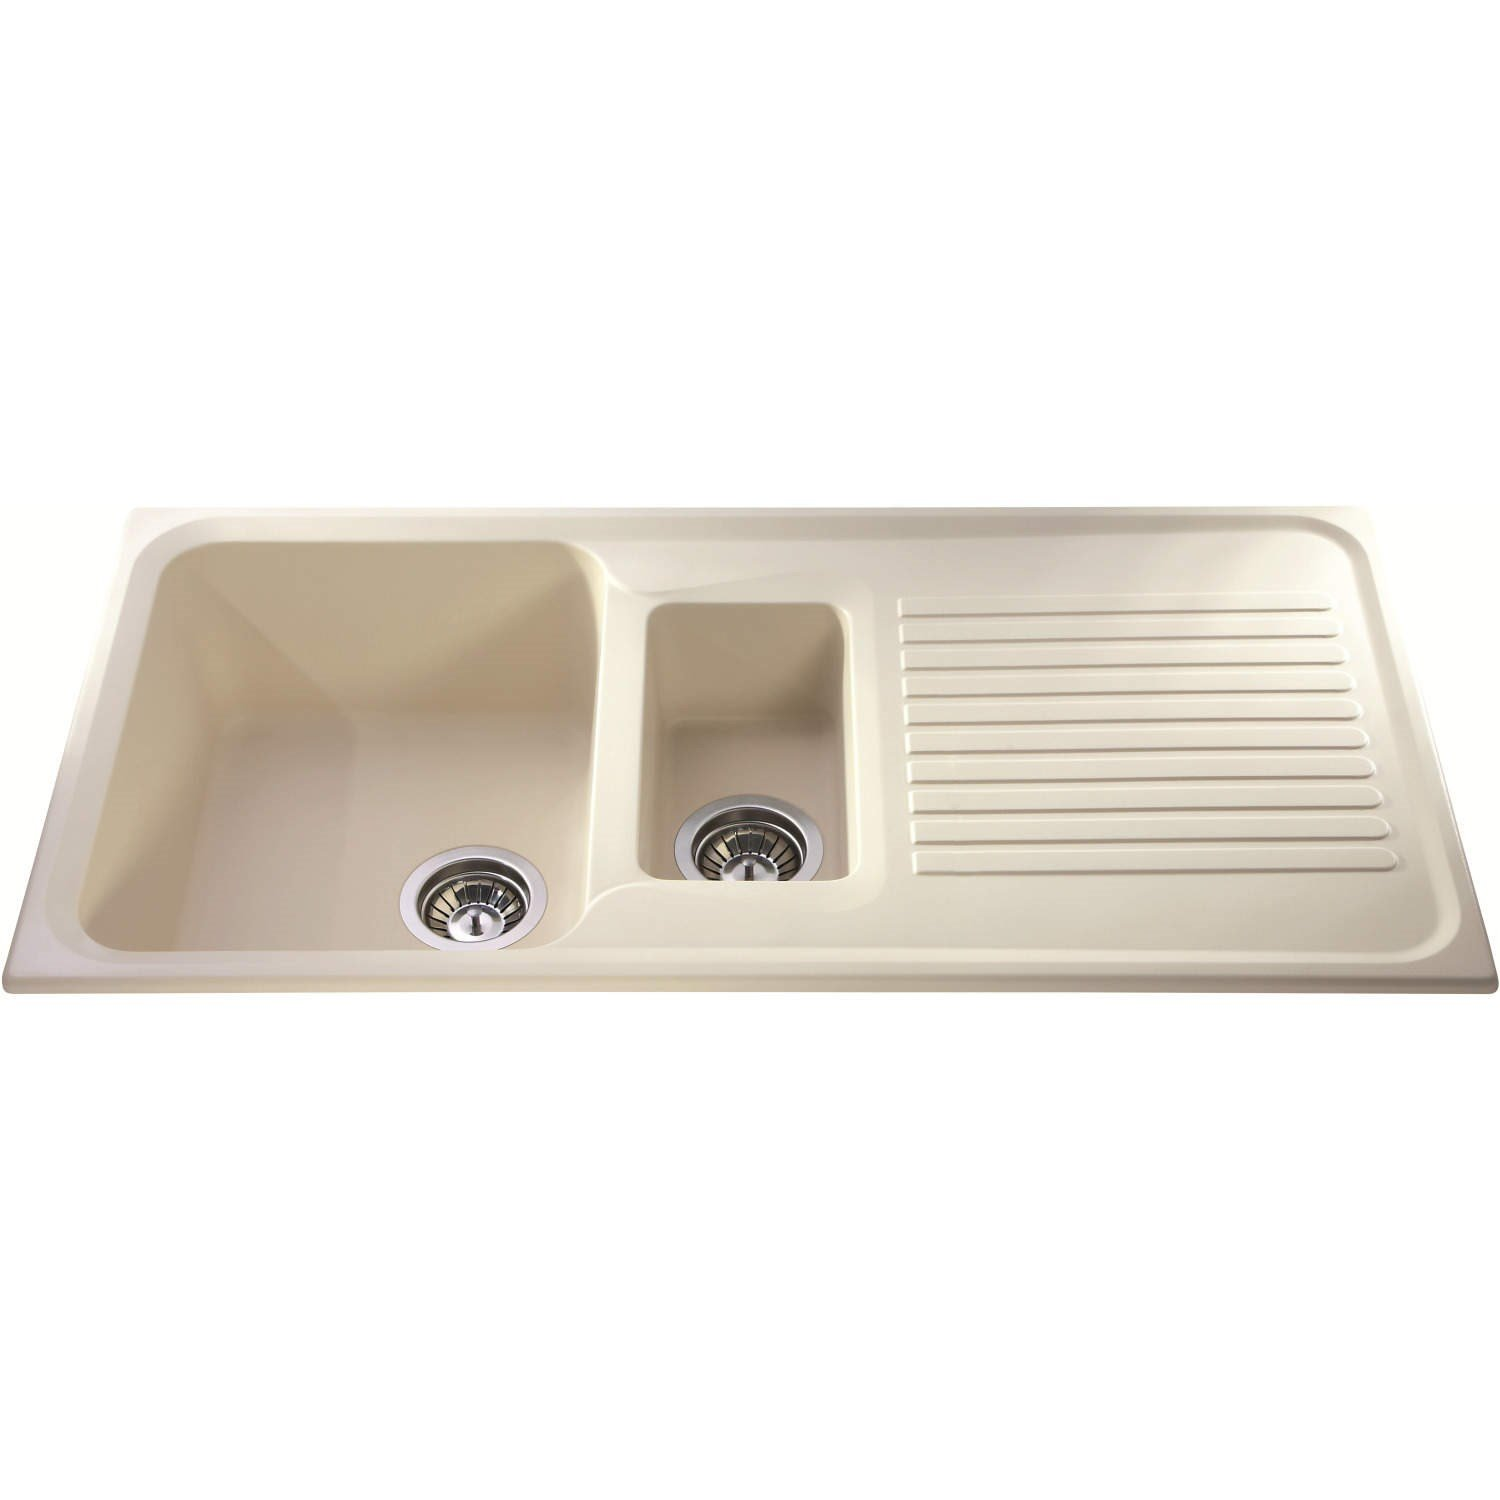 CDA AS2CMComposite 1.5 Bowl Sink Cream: Amazon.co.uk: DIY & Tools